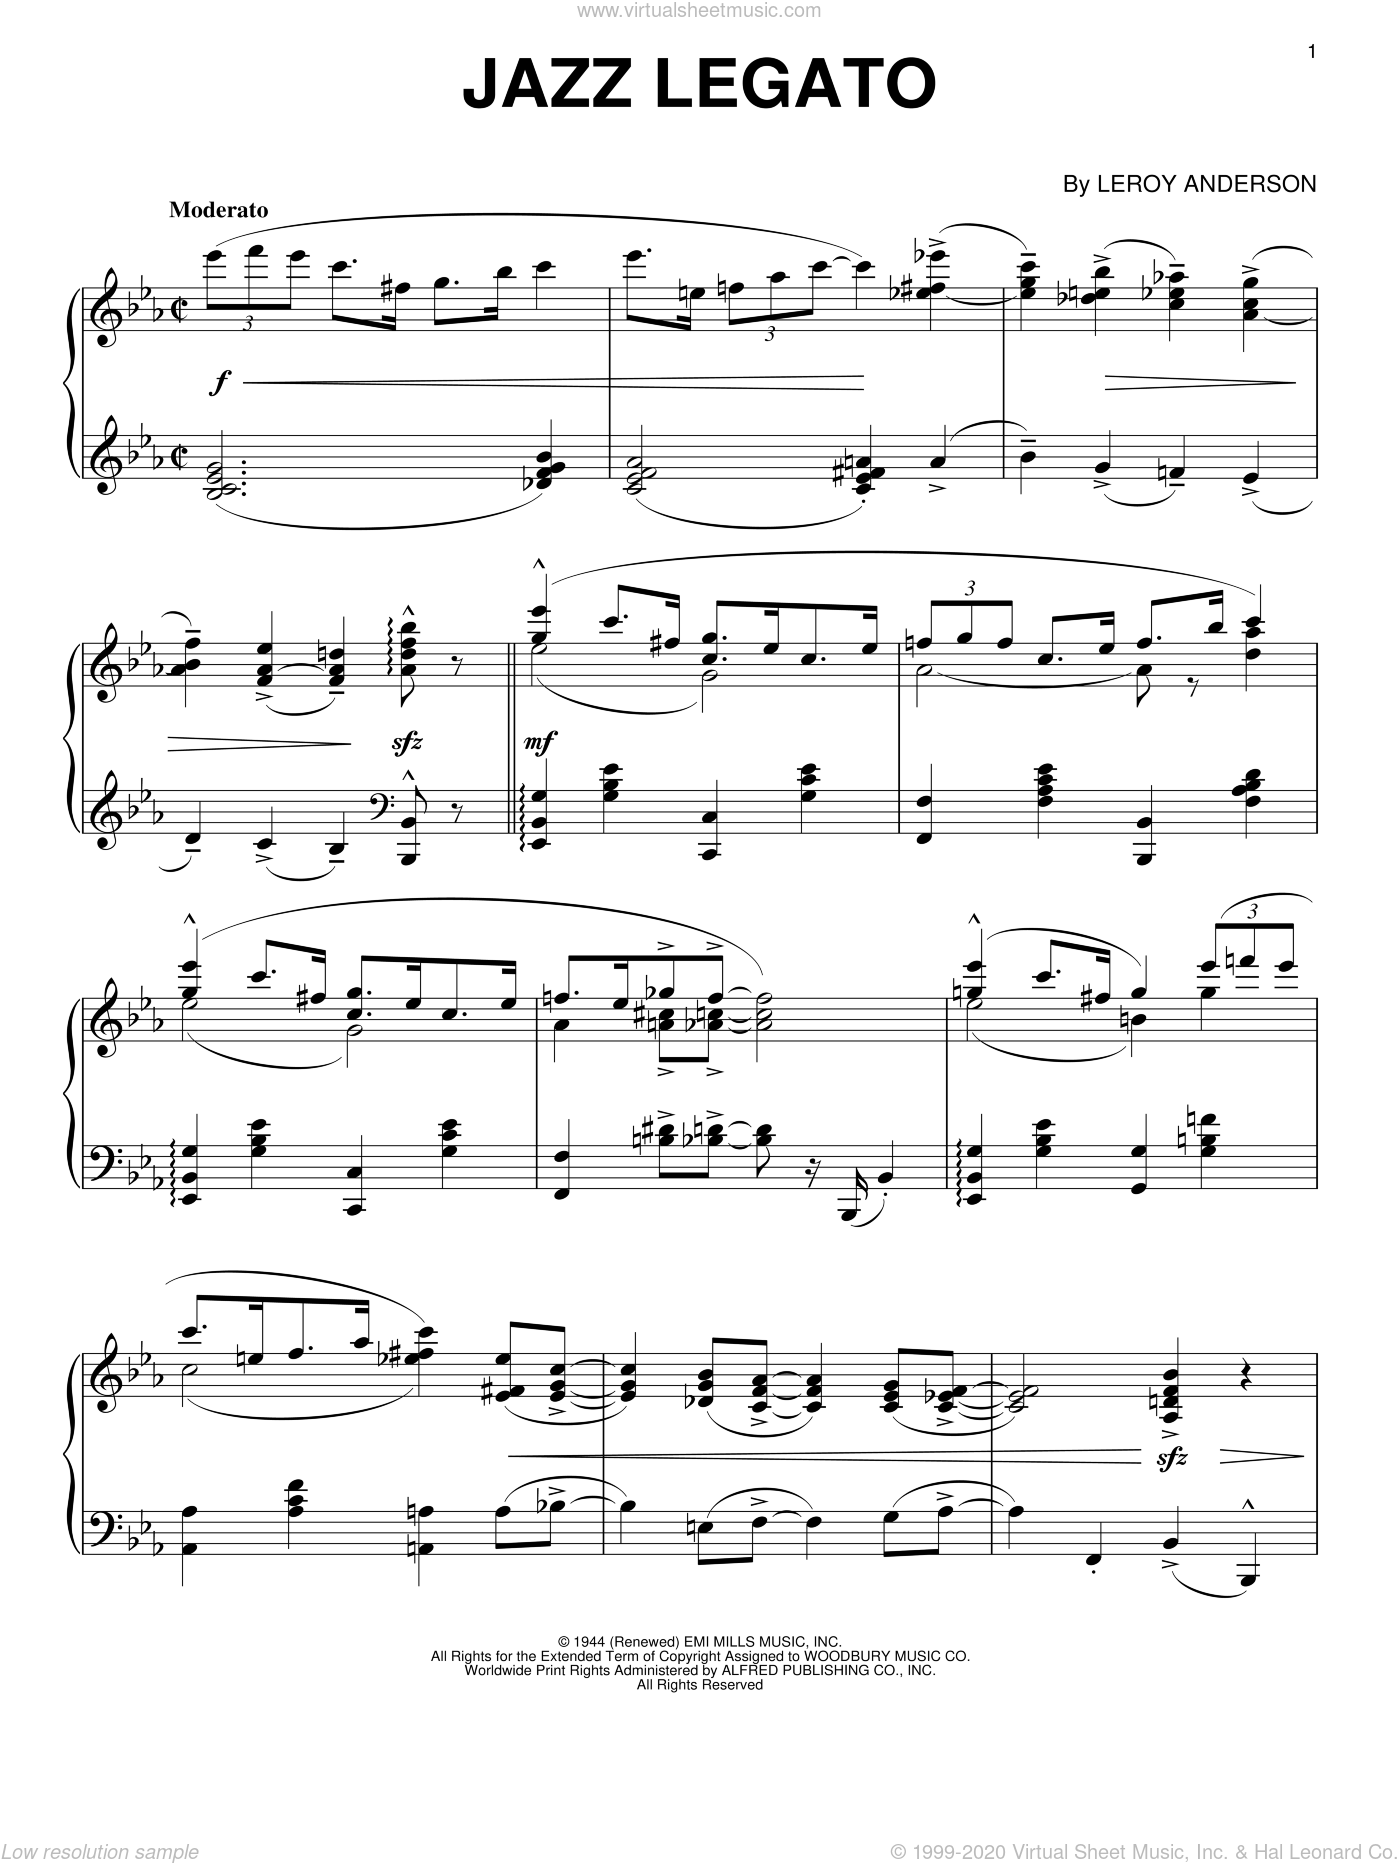 Jazz Legato sheet music for piano solo by Leroy Anderson. Score Image Preview.